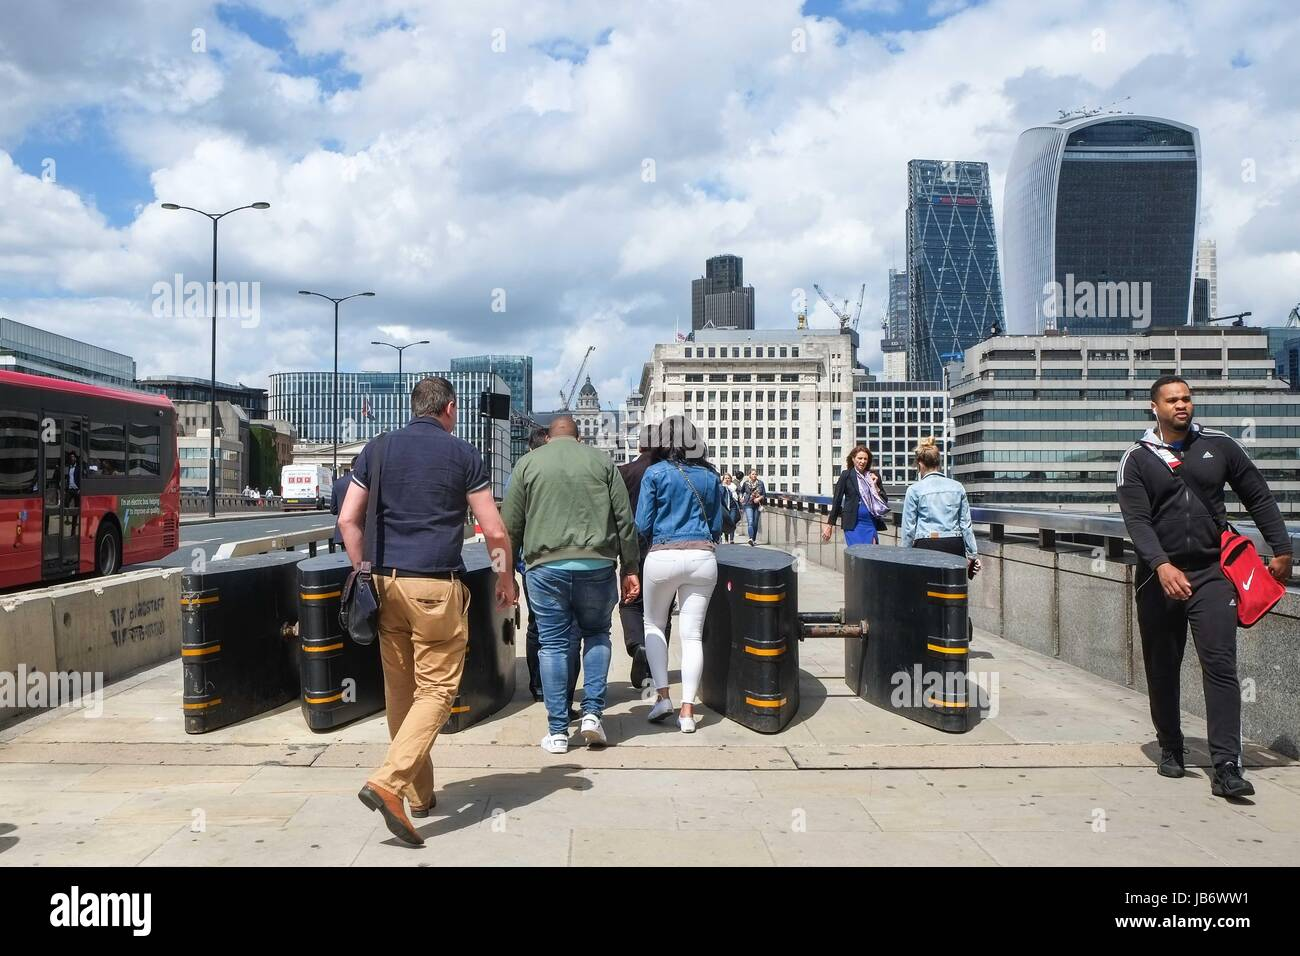 London: 9th June 2017. Security bollards installed on London Bridge after the terror attack on 3rd June that killed Stock Photo